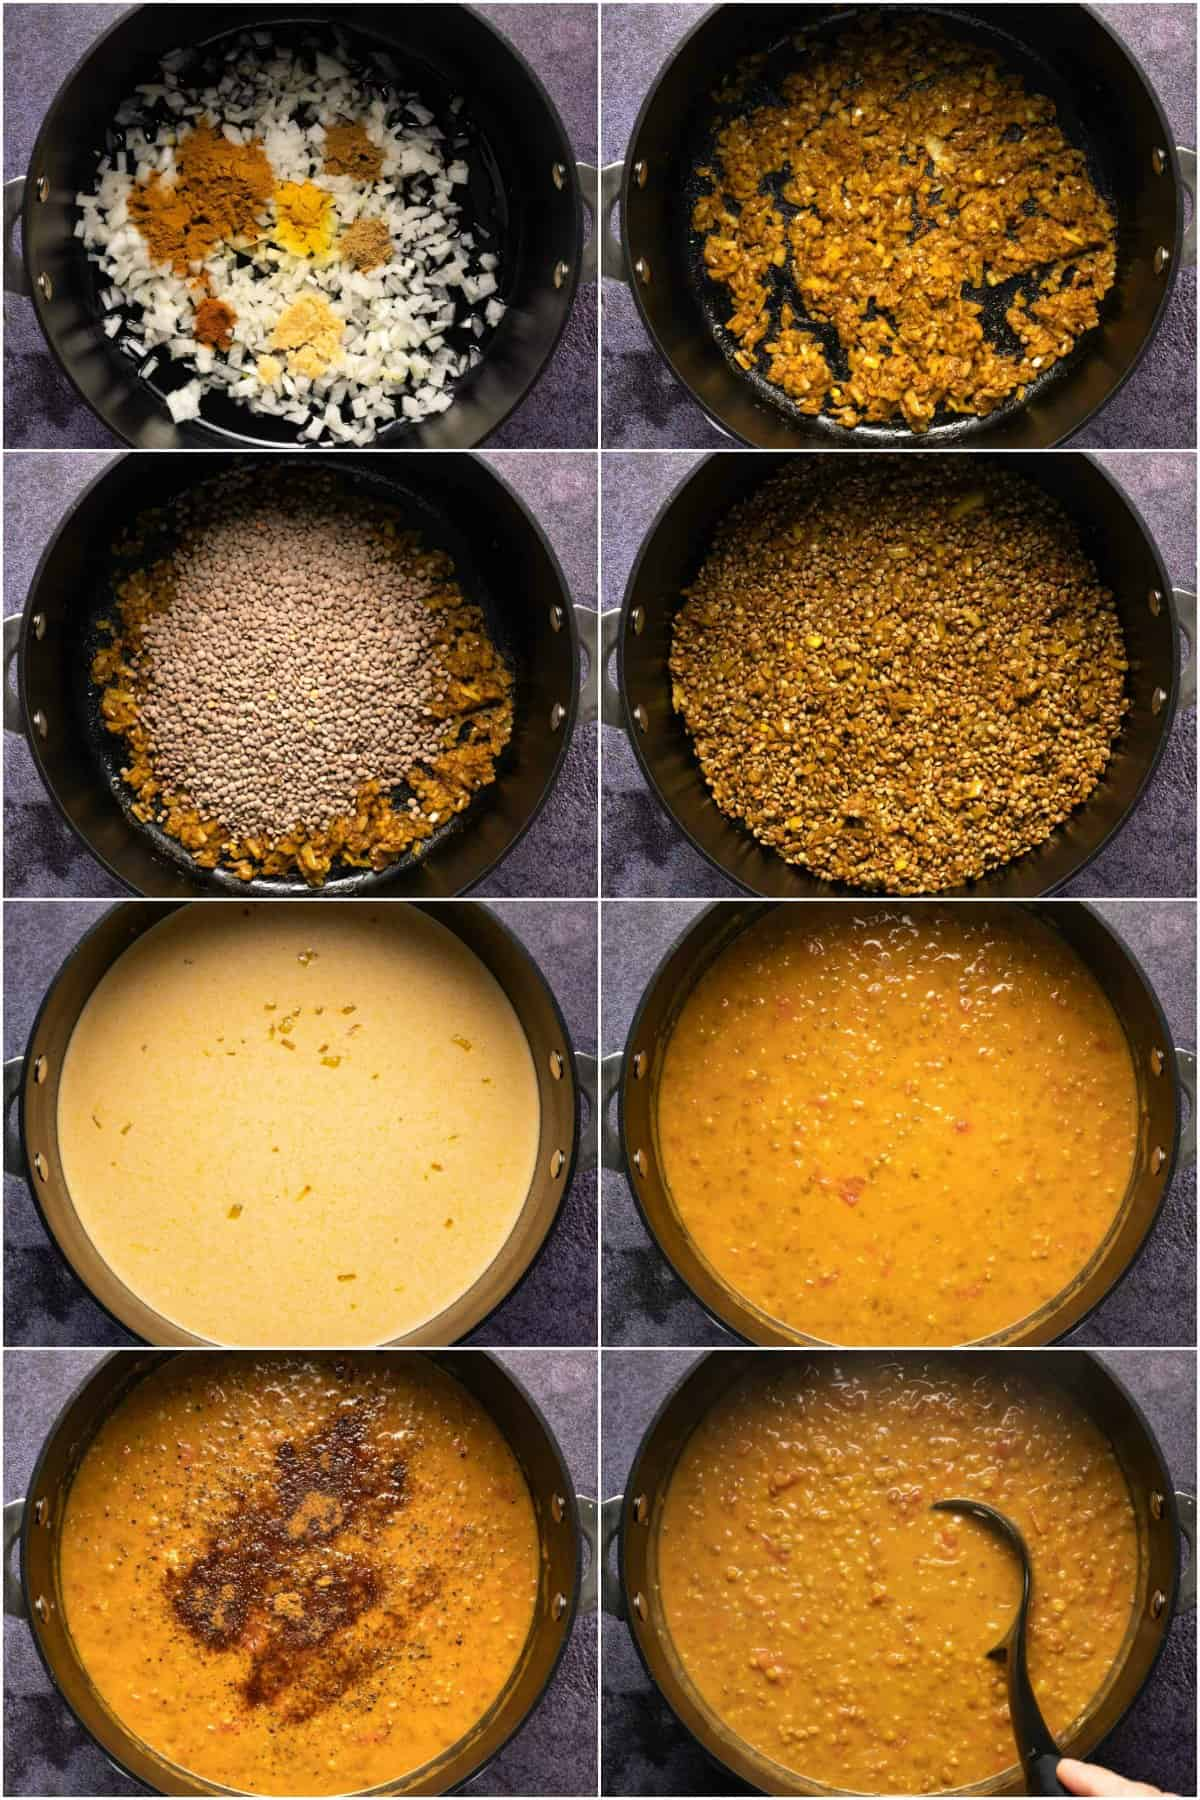 Step by step process photo collage of making lentil curry.